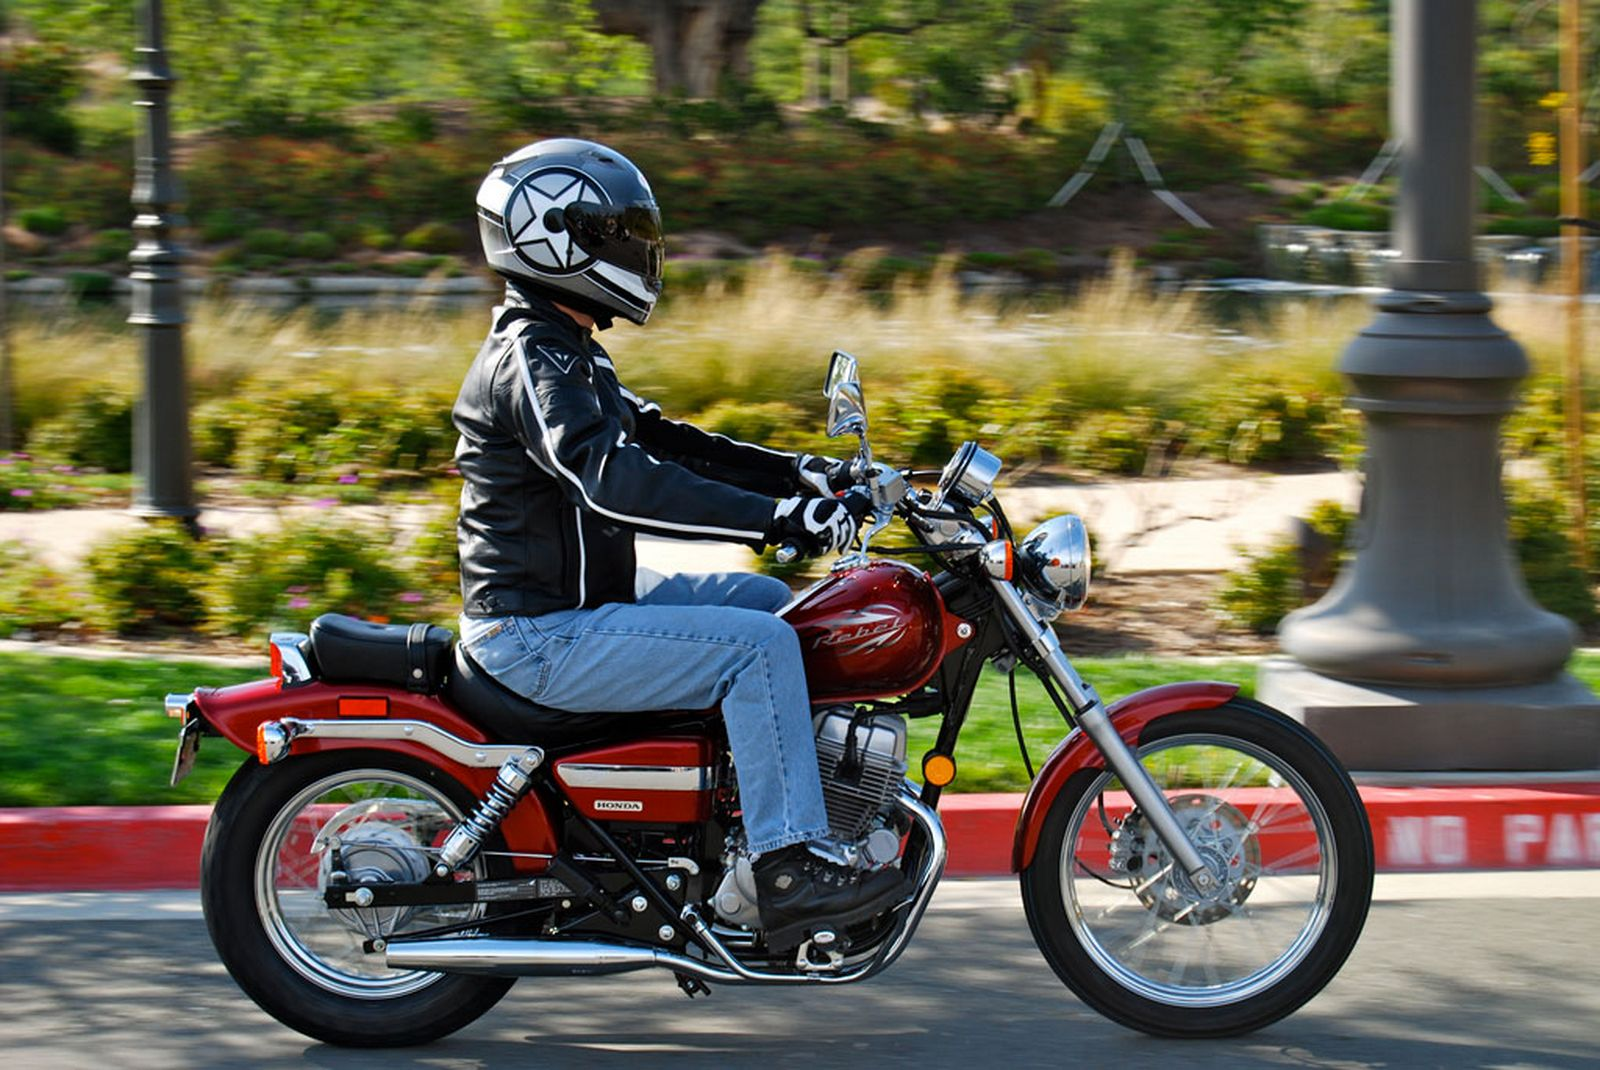 IMPORTANCE OF MOTORCYCLE INSURANCE – TIPS TO STAY SAFE ON THE ROAD